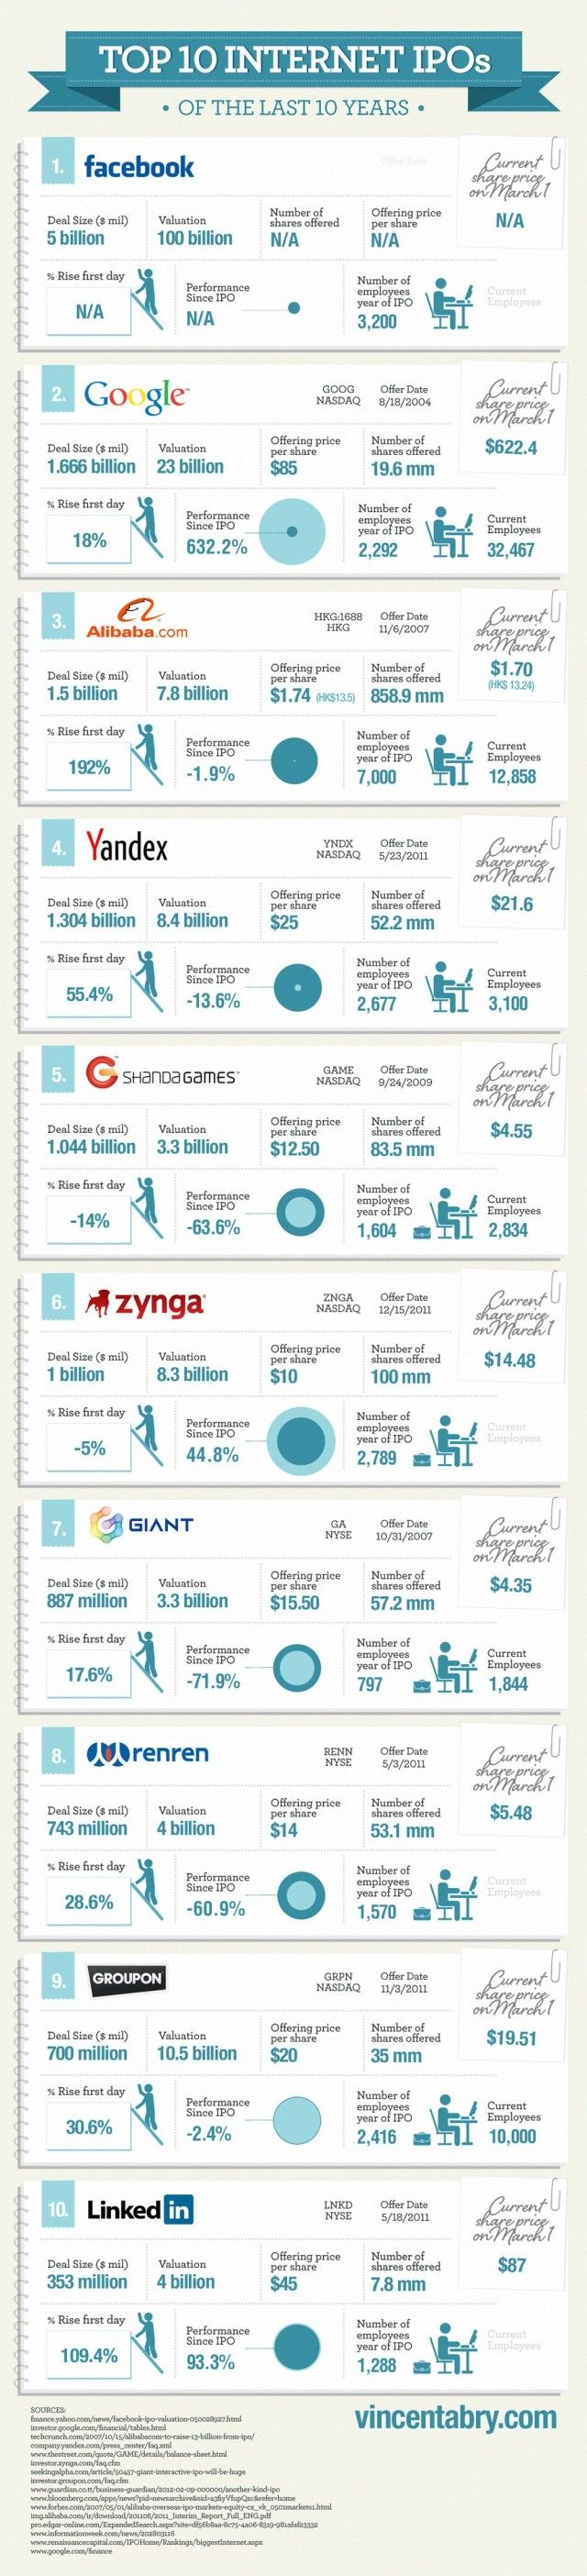 Top 10 Internet IPOs of the last 10 Years